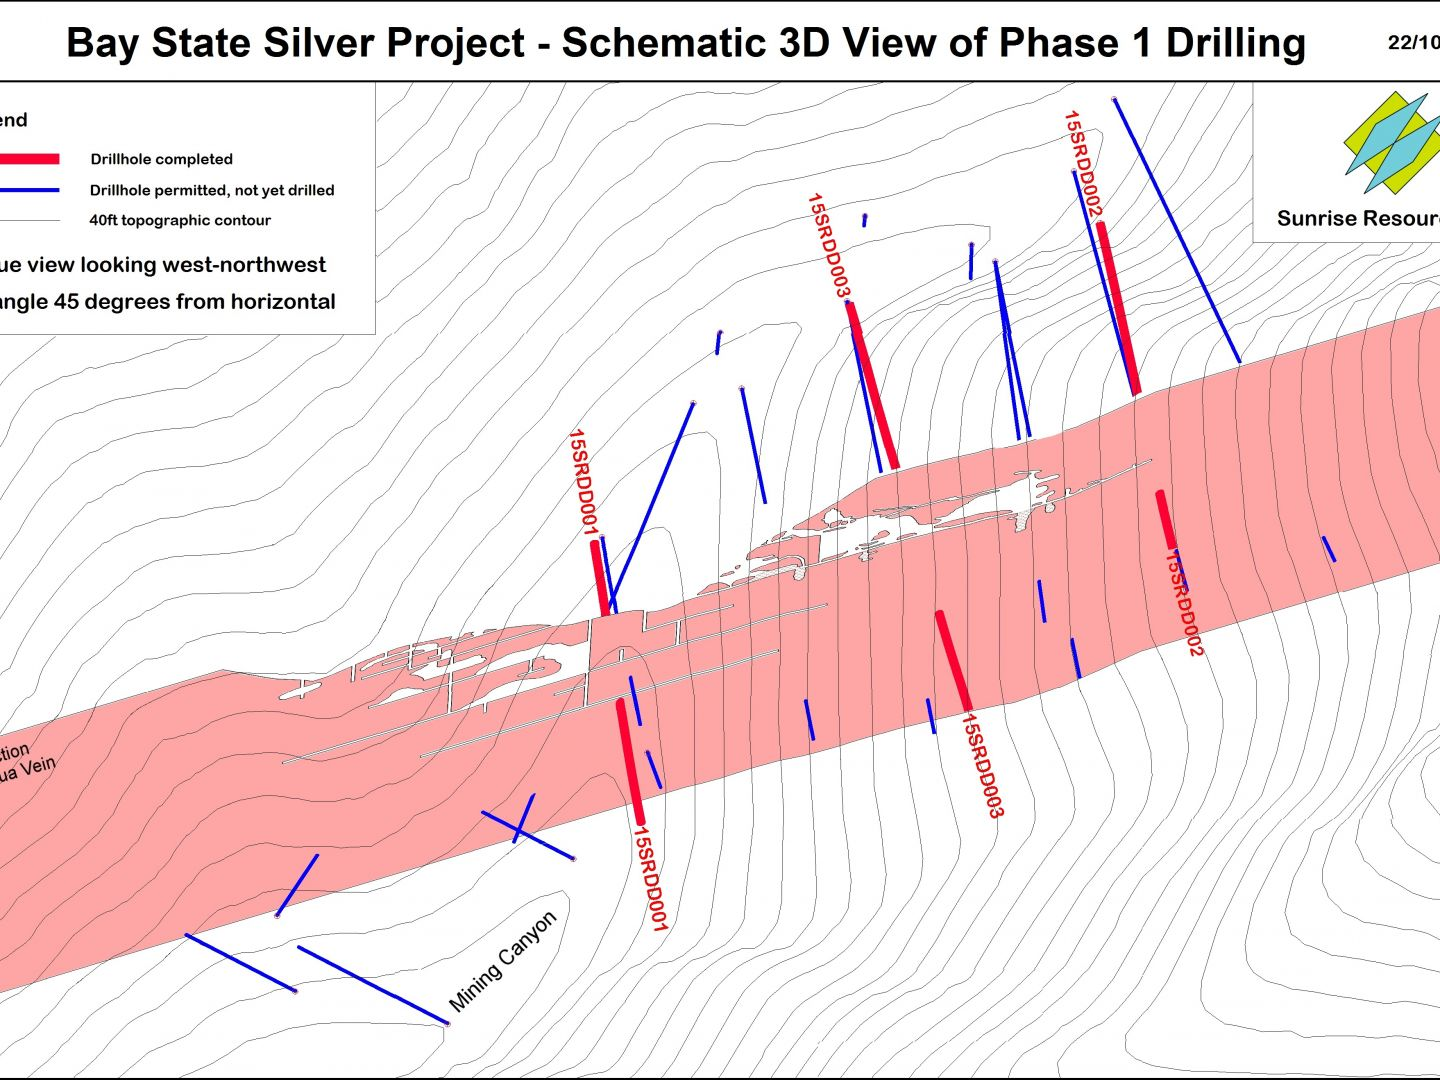 Bay State Schematic - Phase 1 Drilling